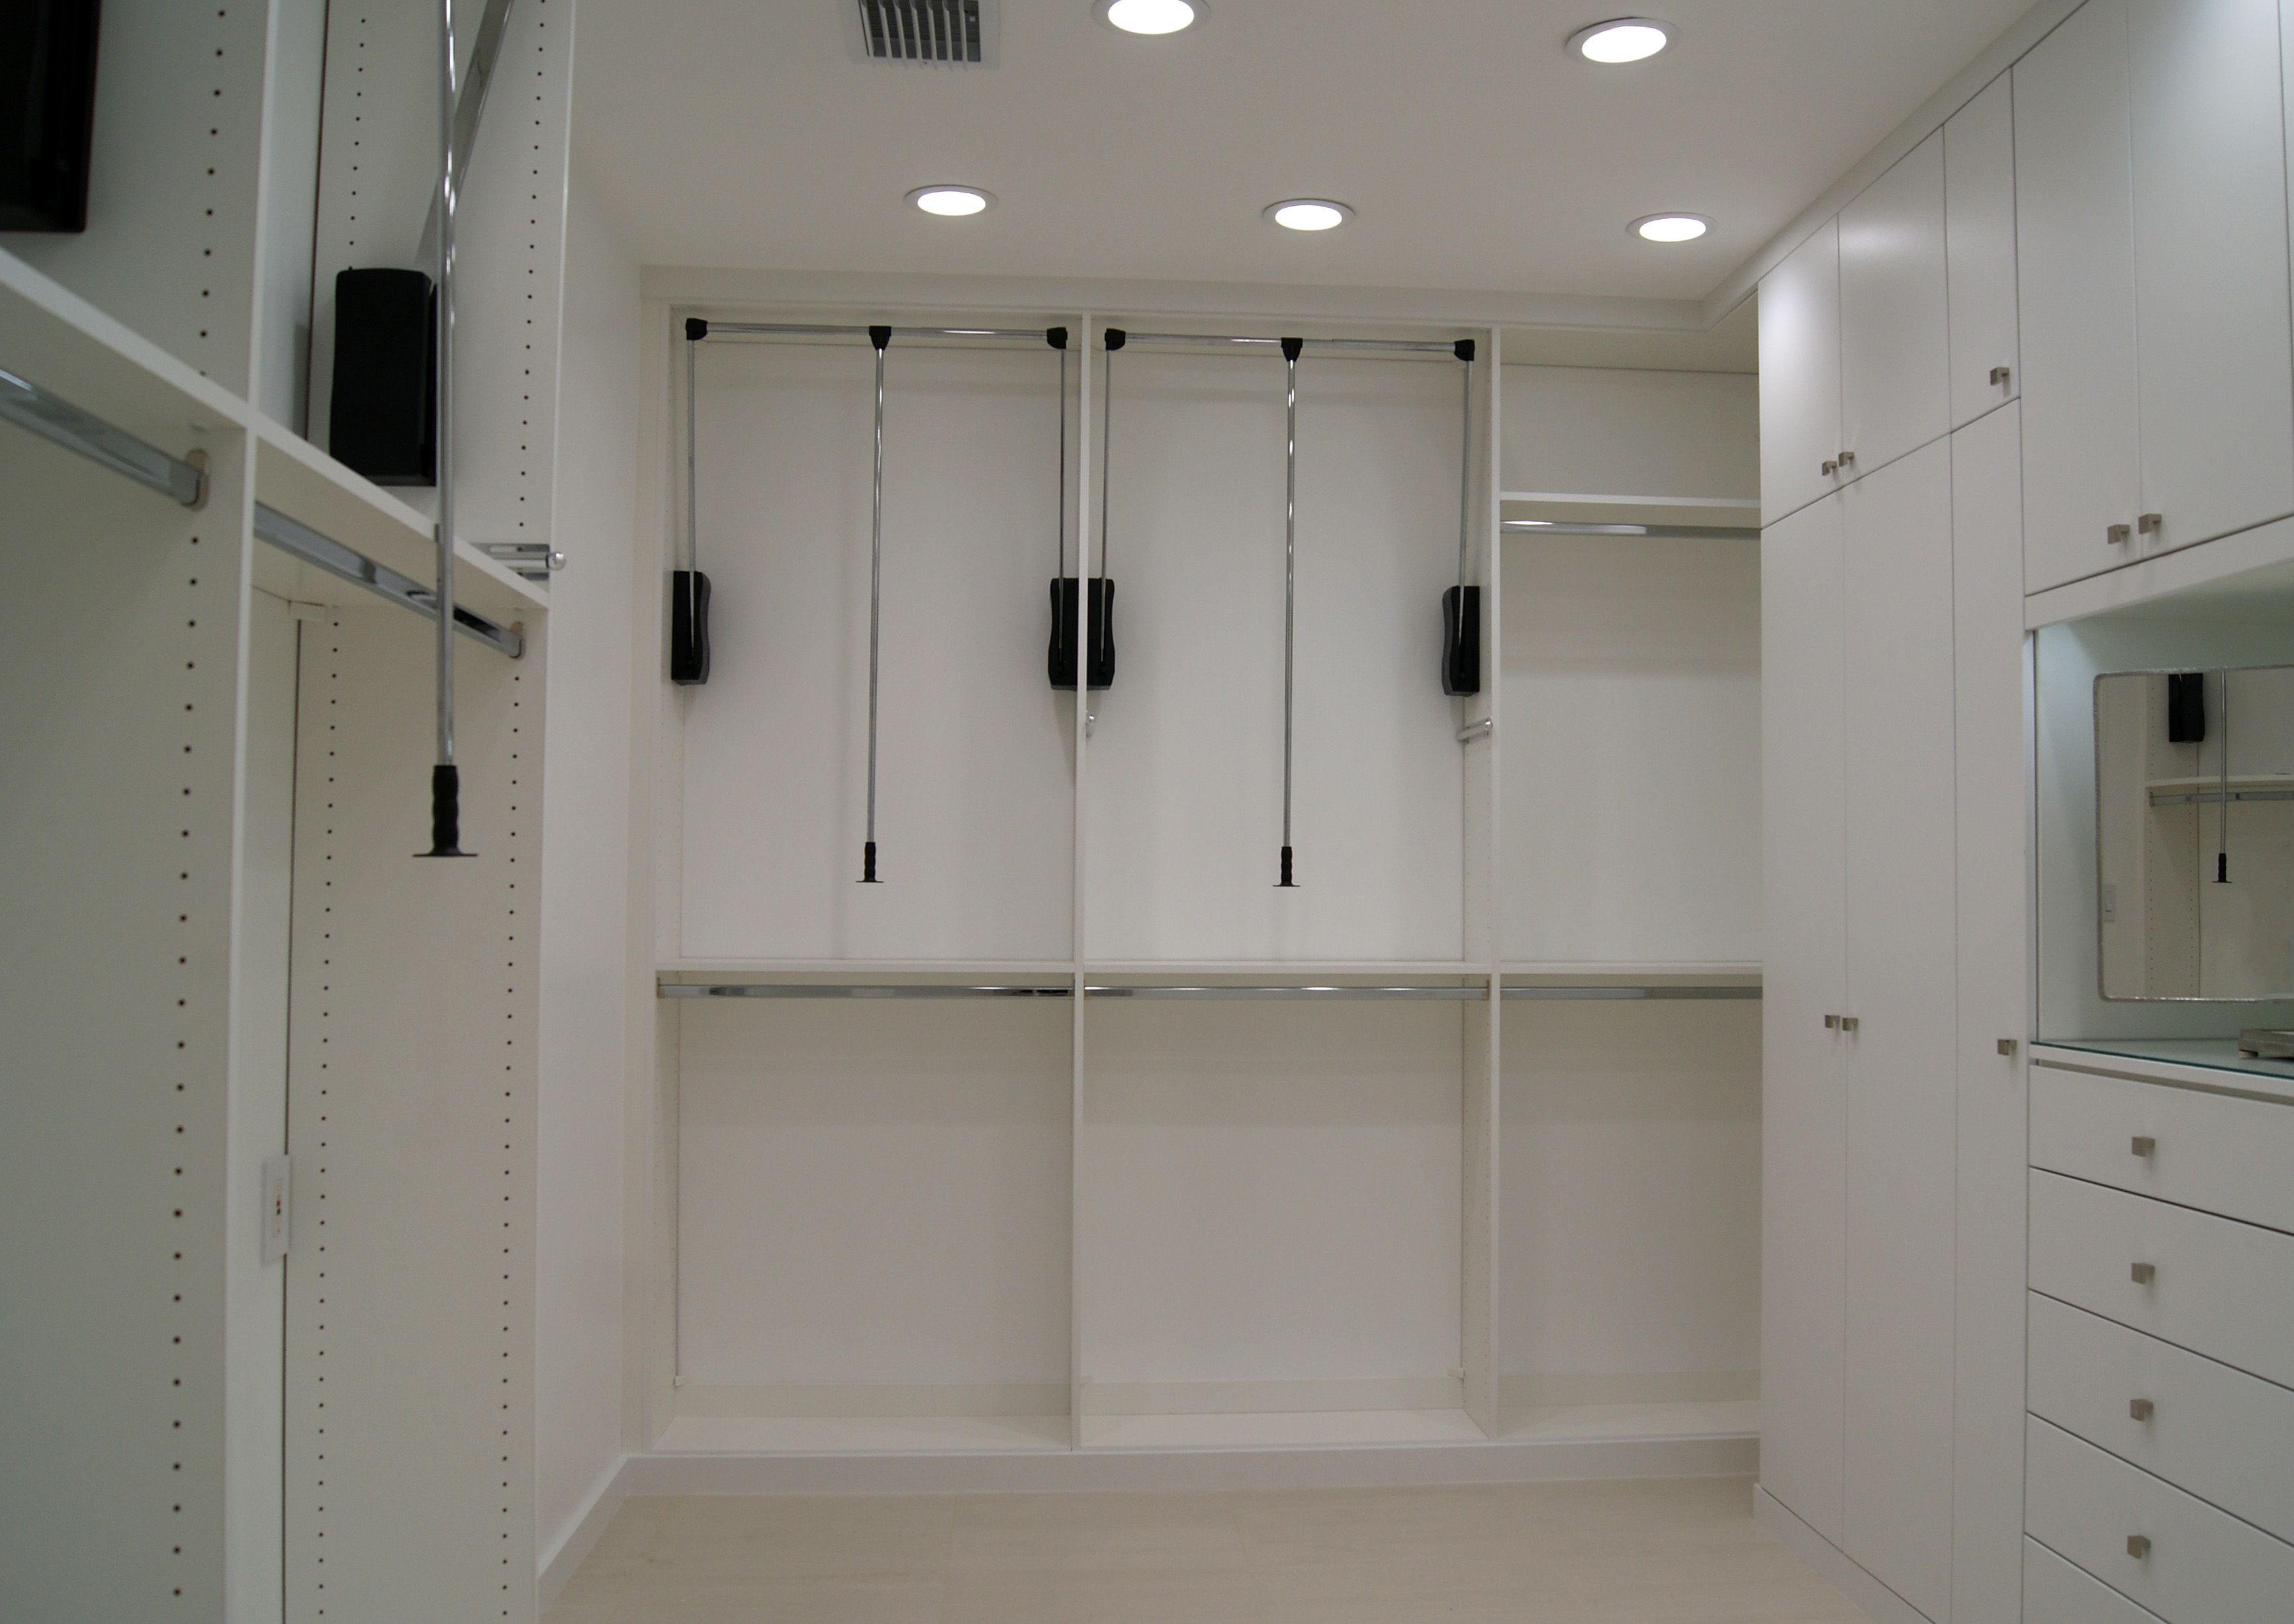 Pull Down Hanging Rods Utilize The High Ceilings In This